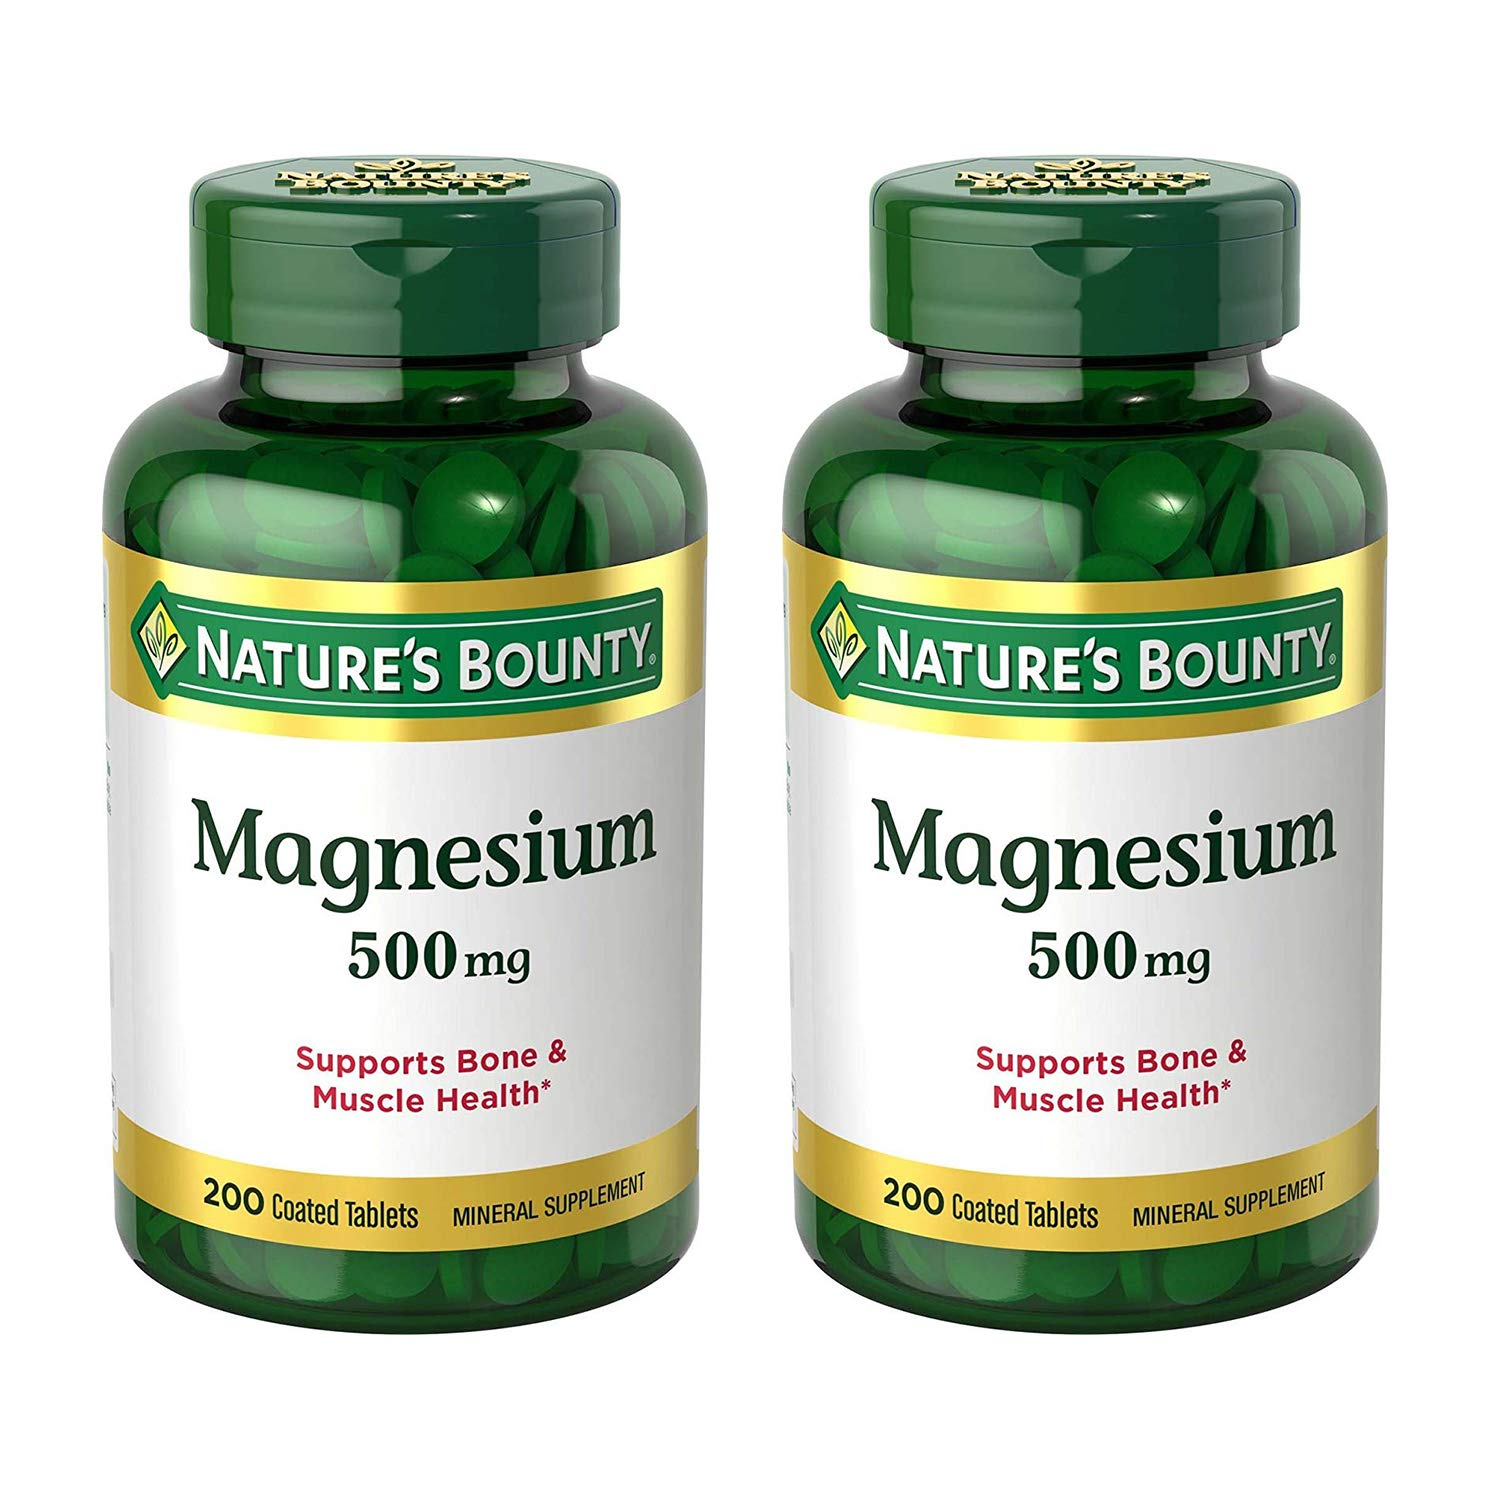 Nature's Bounty Magnesium 500 mg, 200 Tablets (2 Pack)